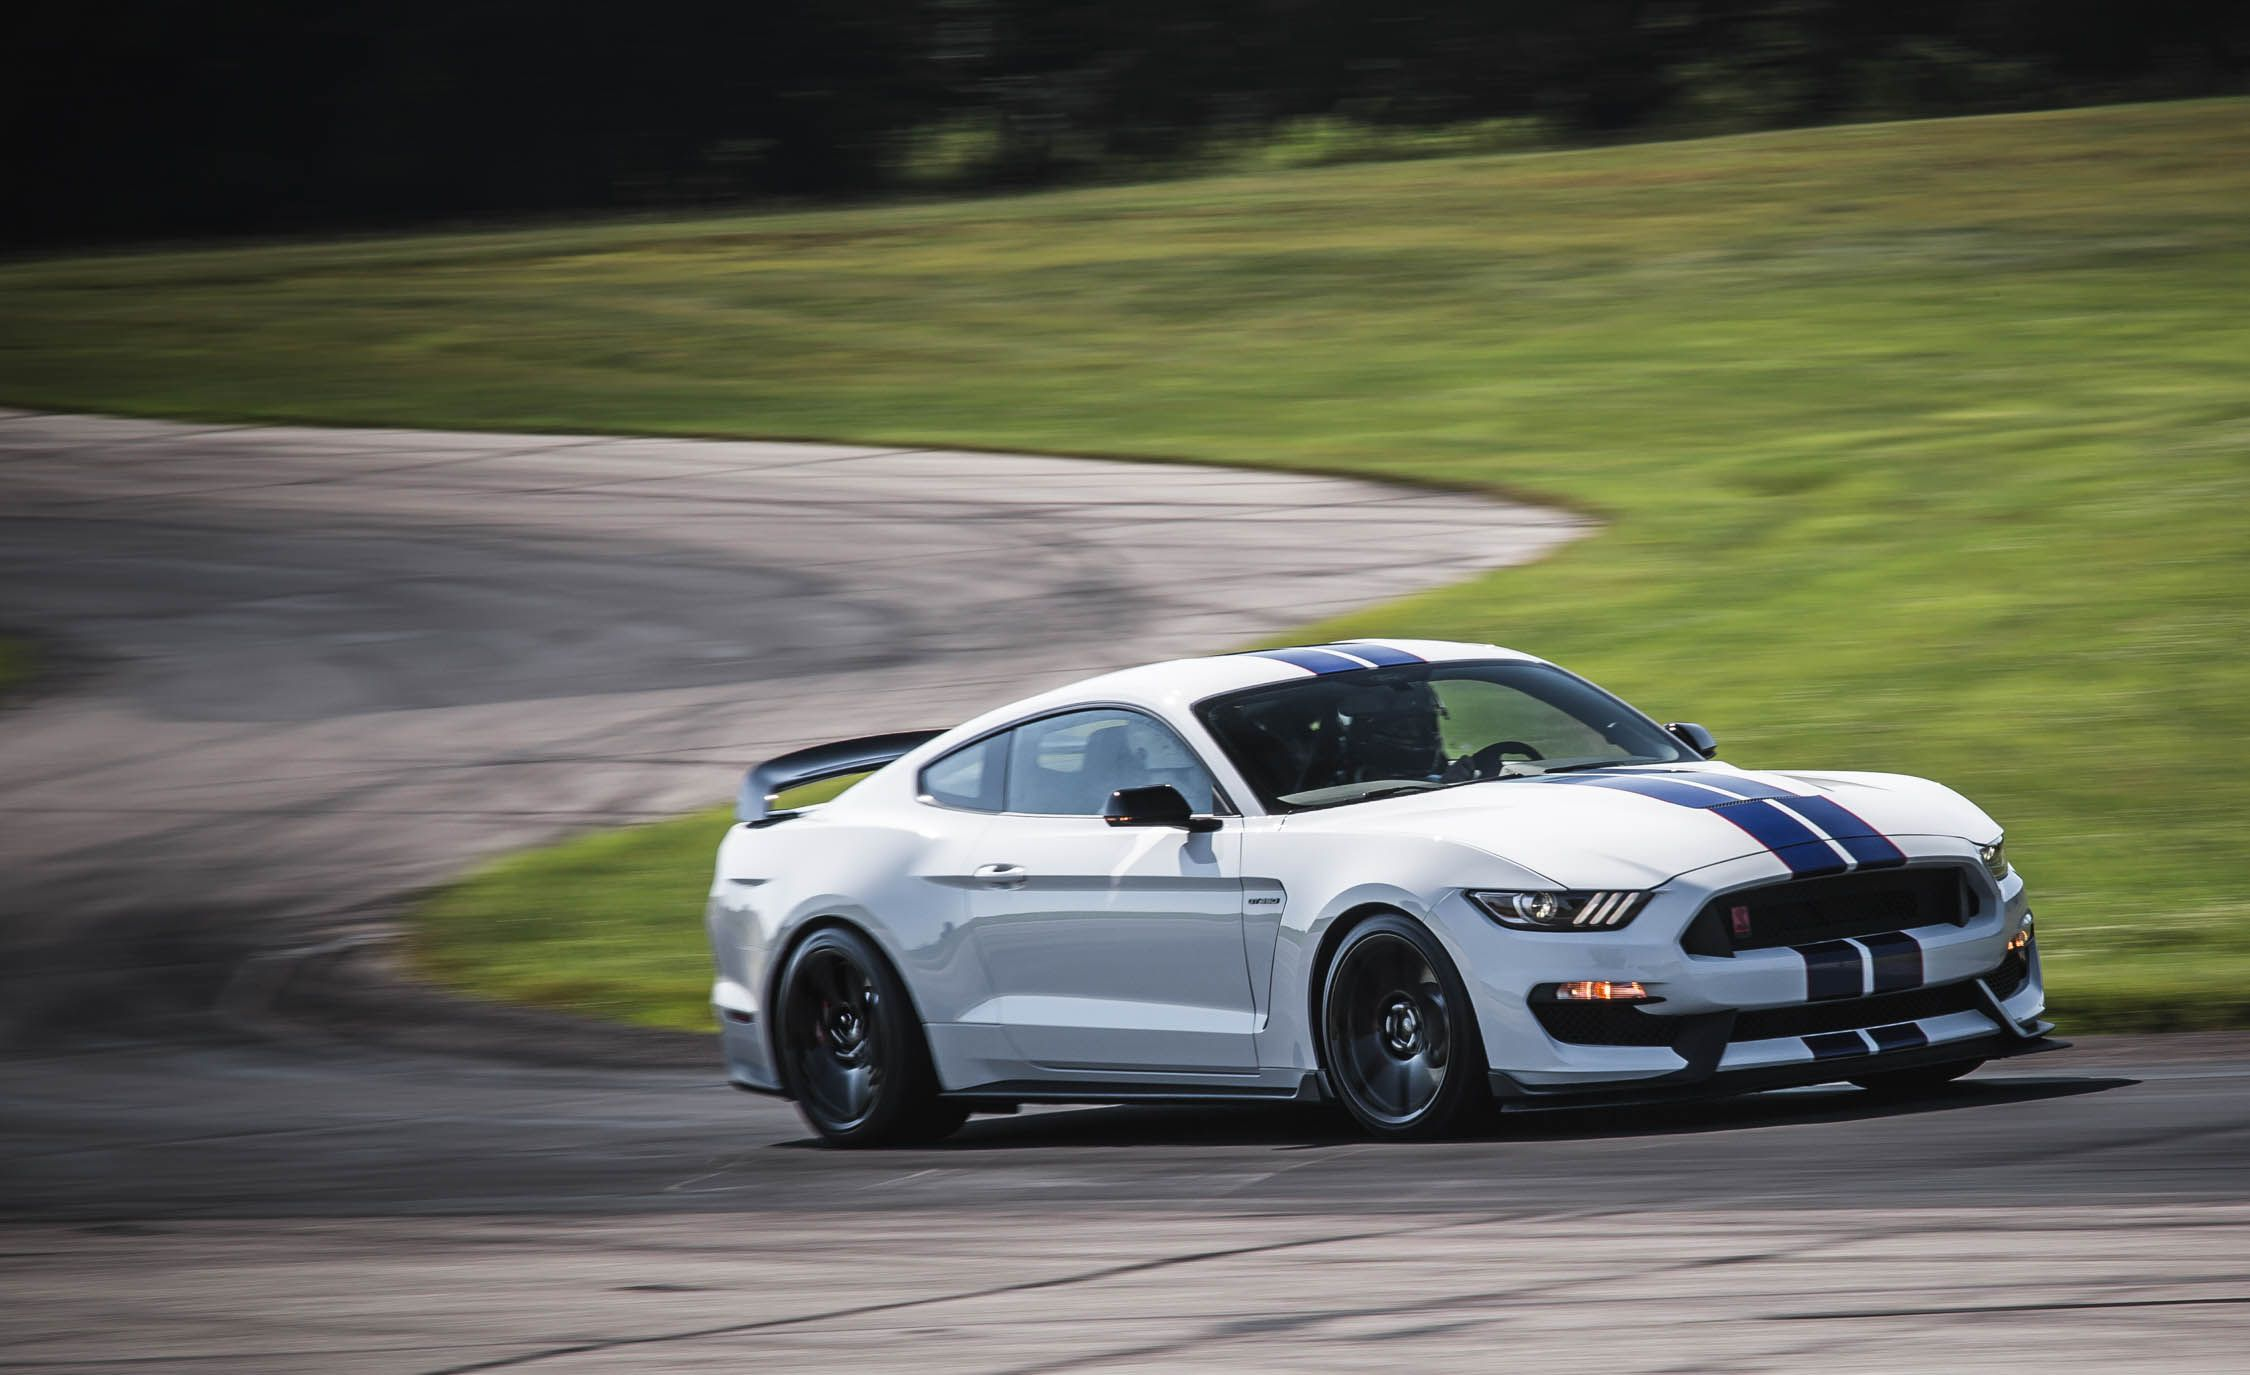 Gt350r Review >> 2018 Ford Mustang Shelby GT350 / GT350R   Performance and Driving Impressions Review   Car and ...